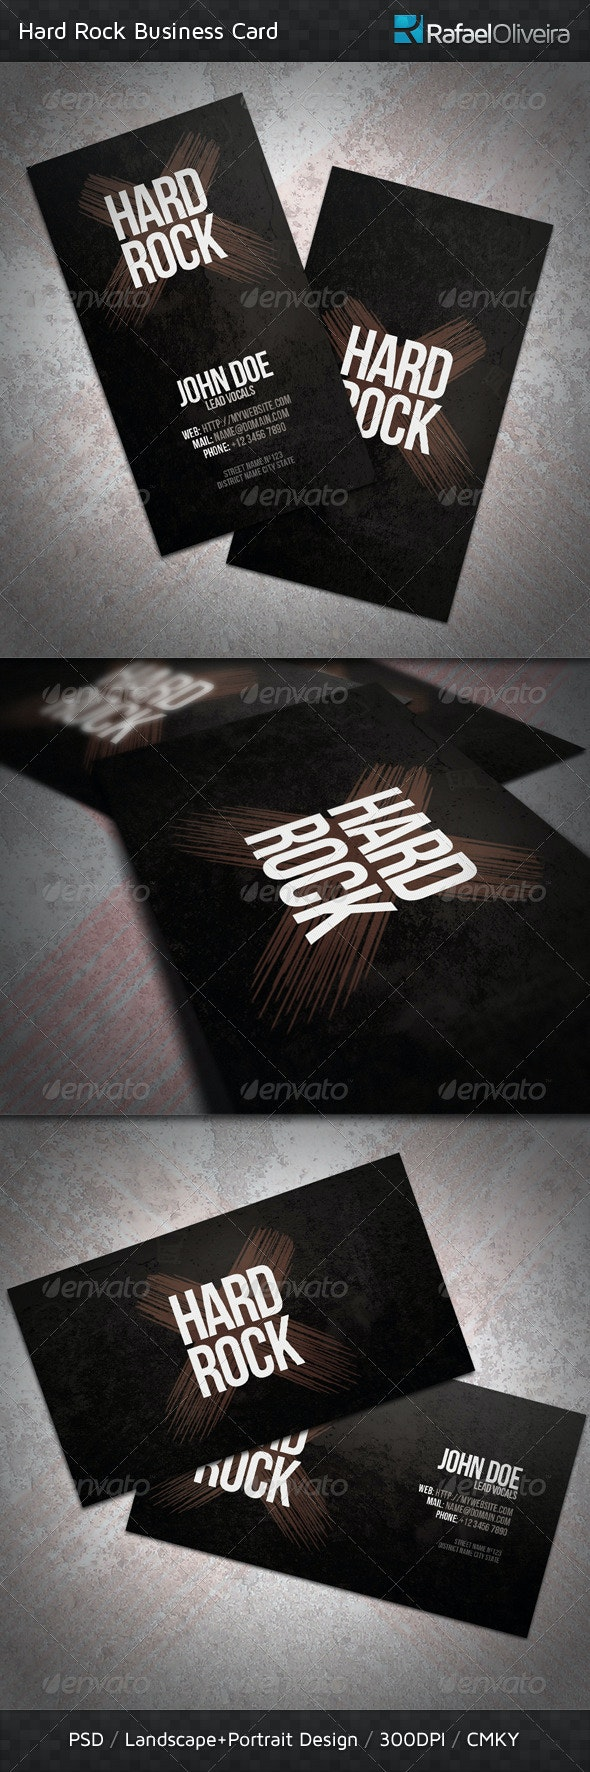 Hard Rock Business Card - Grunge Business Cards